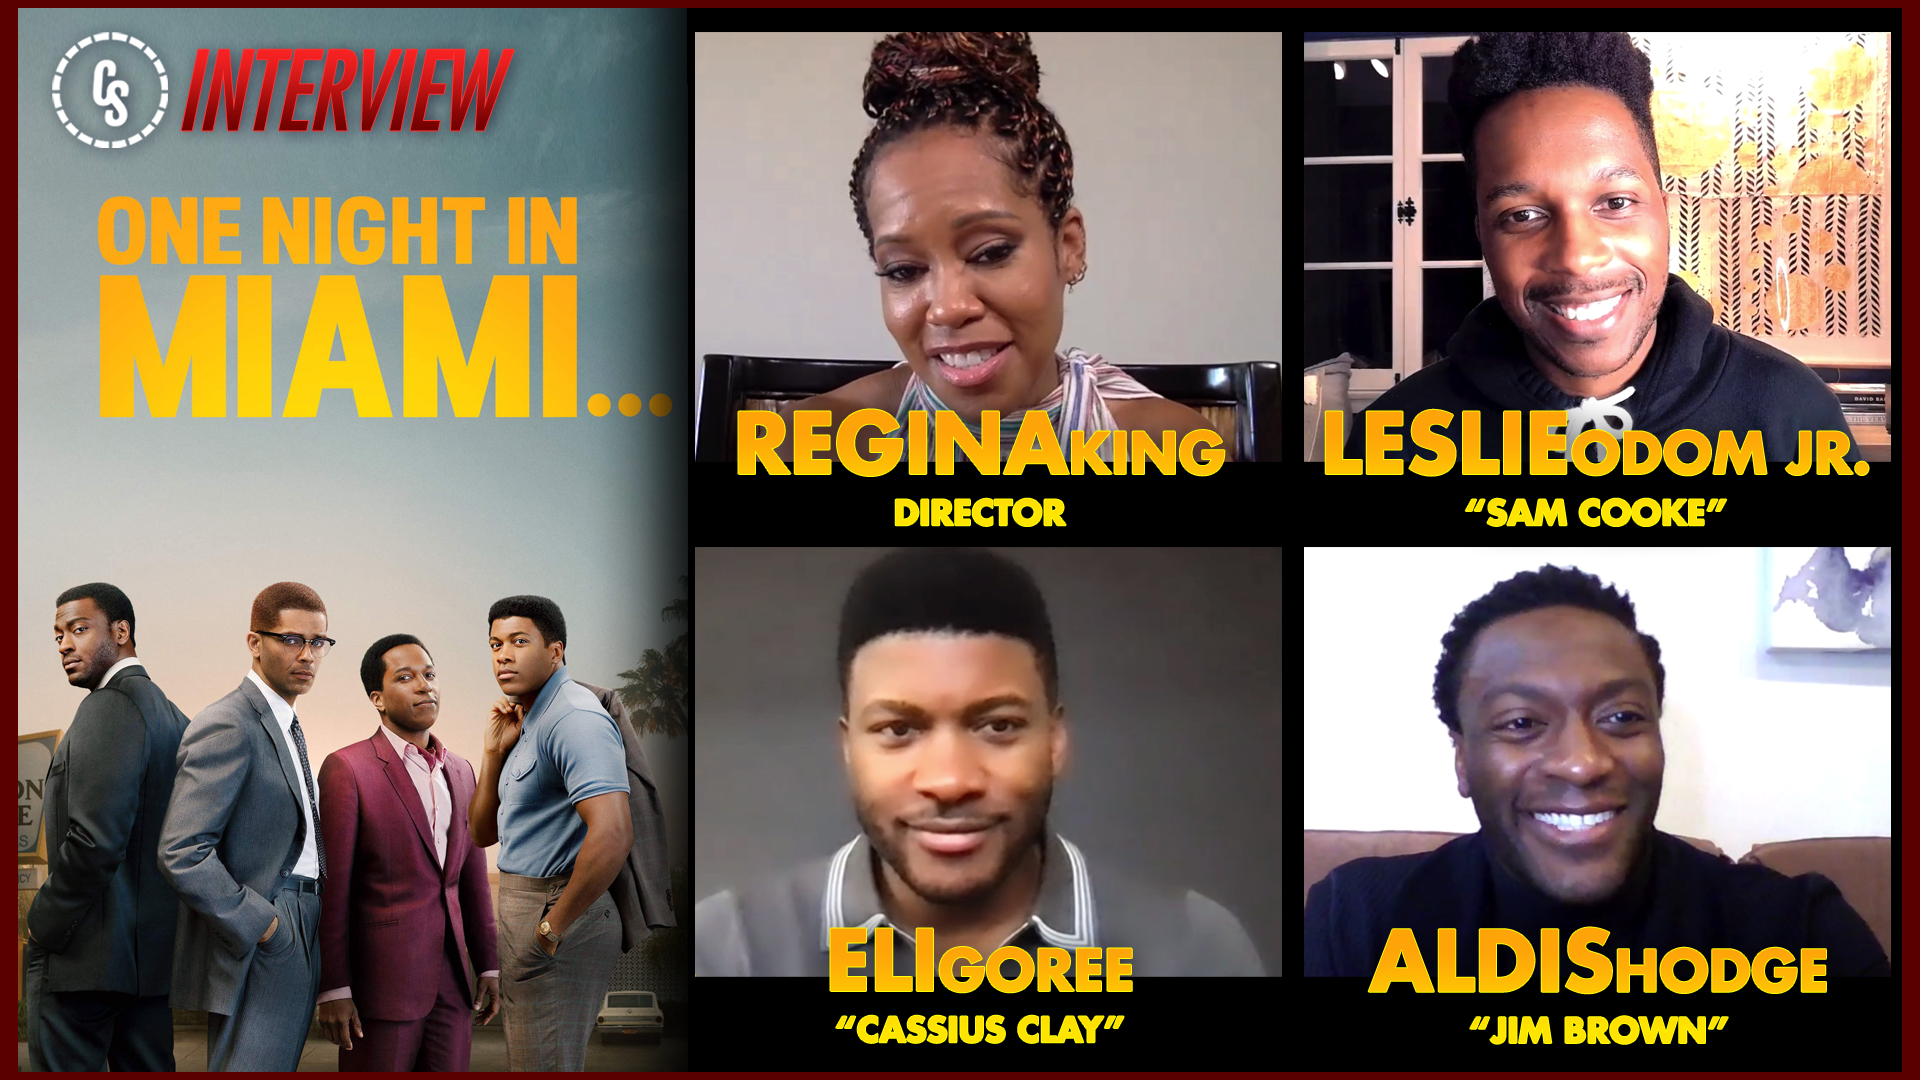 CS Video: One Night in Miami Interviews With Director & Stars!